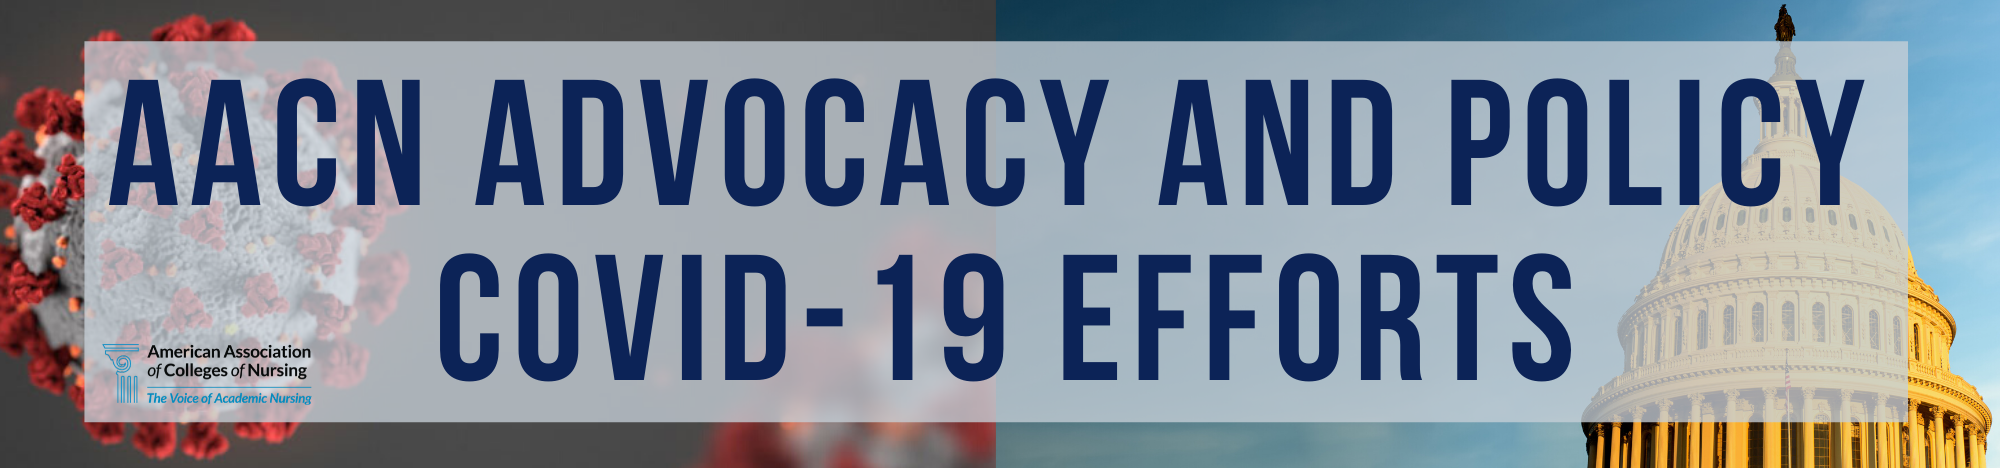 AACN Policy and Advocacy COVID-19 Efforts Banner